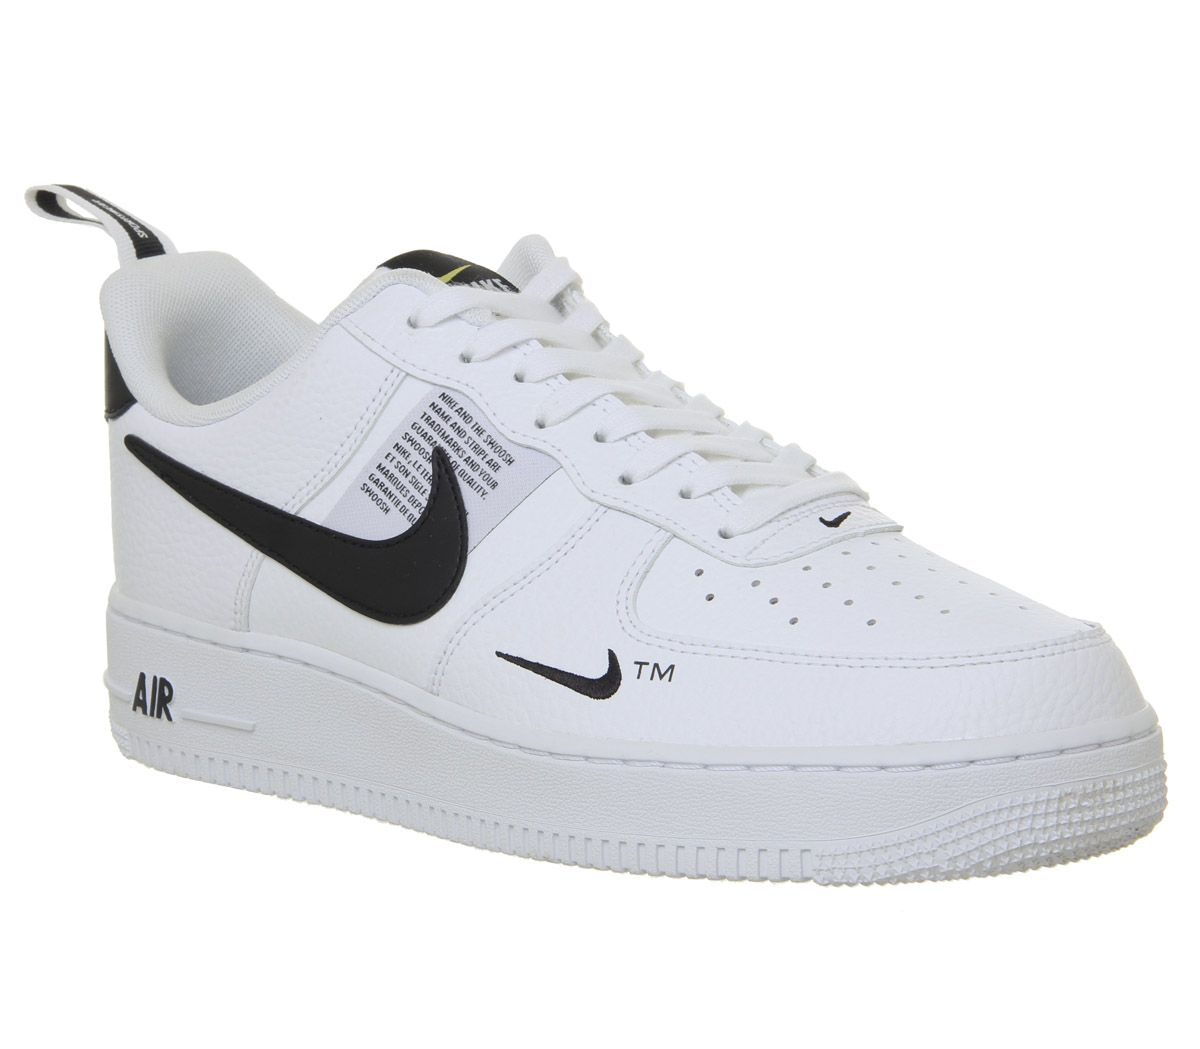 7432024bcb Nike Air Force 1 Utility Trainers White White Black Tour Yellow ...